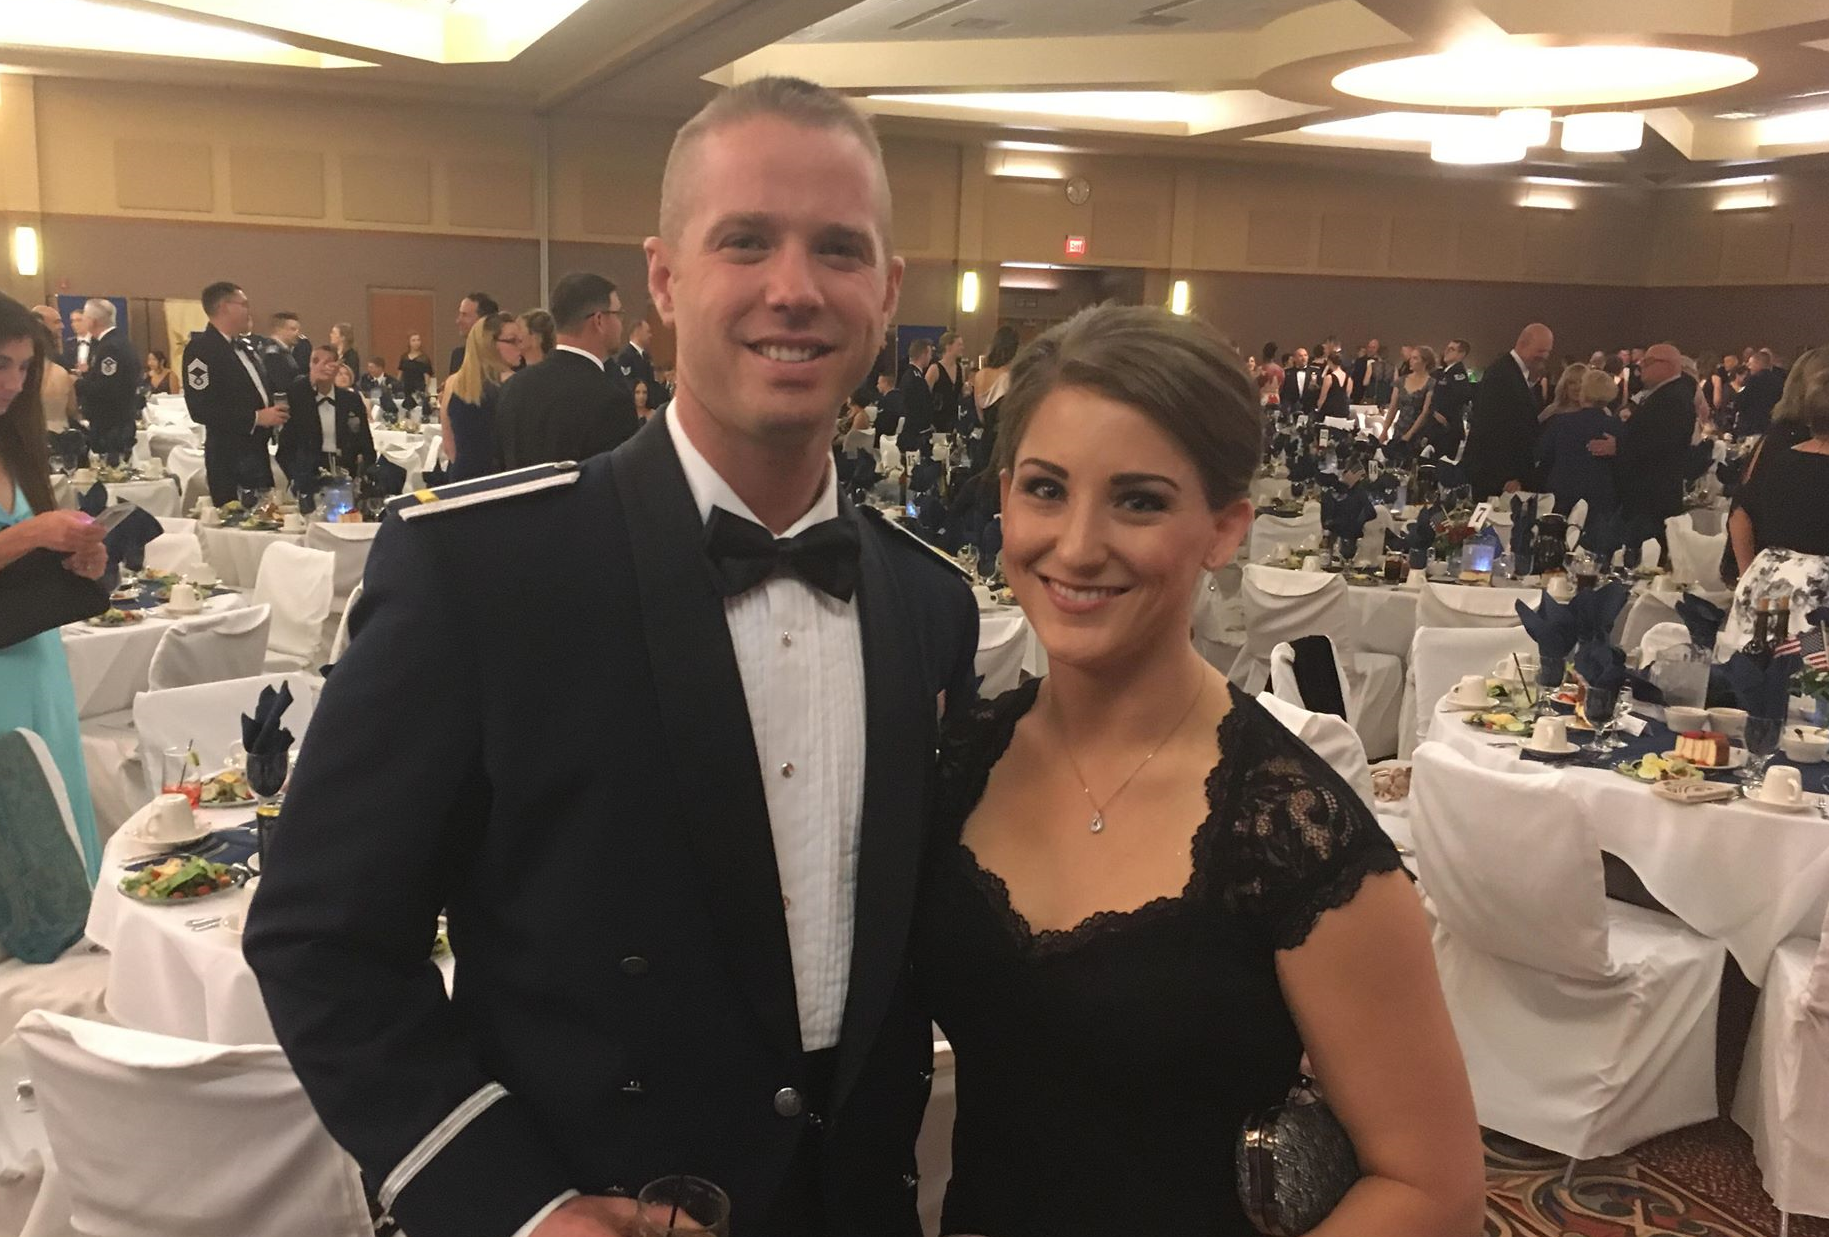 NewsCenter1's Samantha Chadwell attends the Ellsworth Air Force Ball on Sept. 22, 2018.